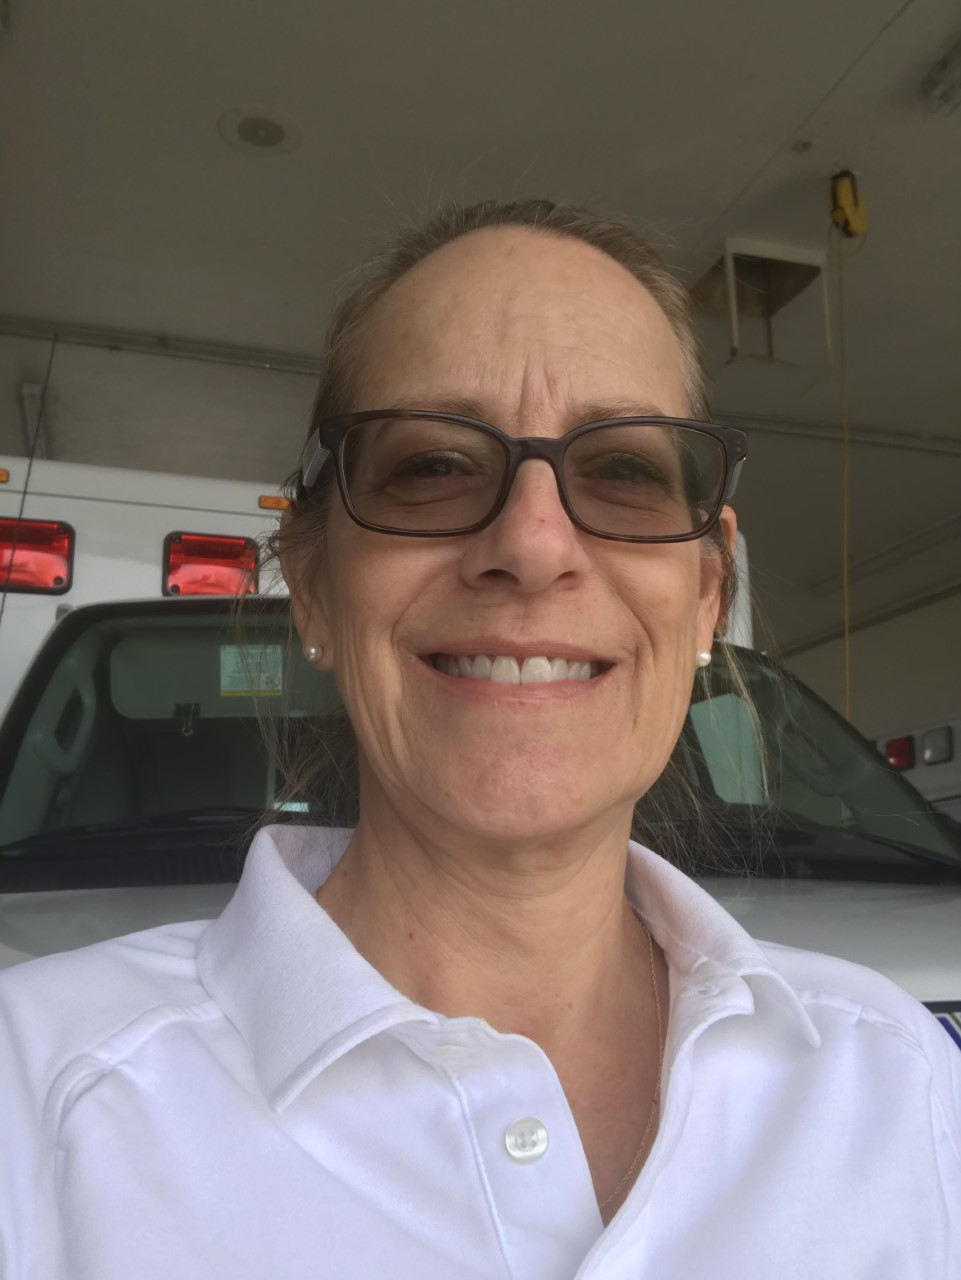 Arizona EMS Workers Put Their Communities First but Struggle to Find Resources